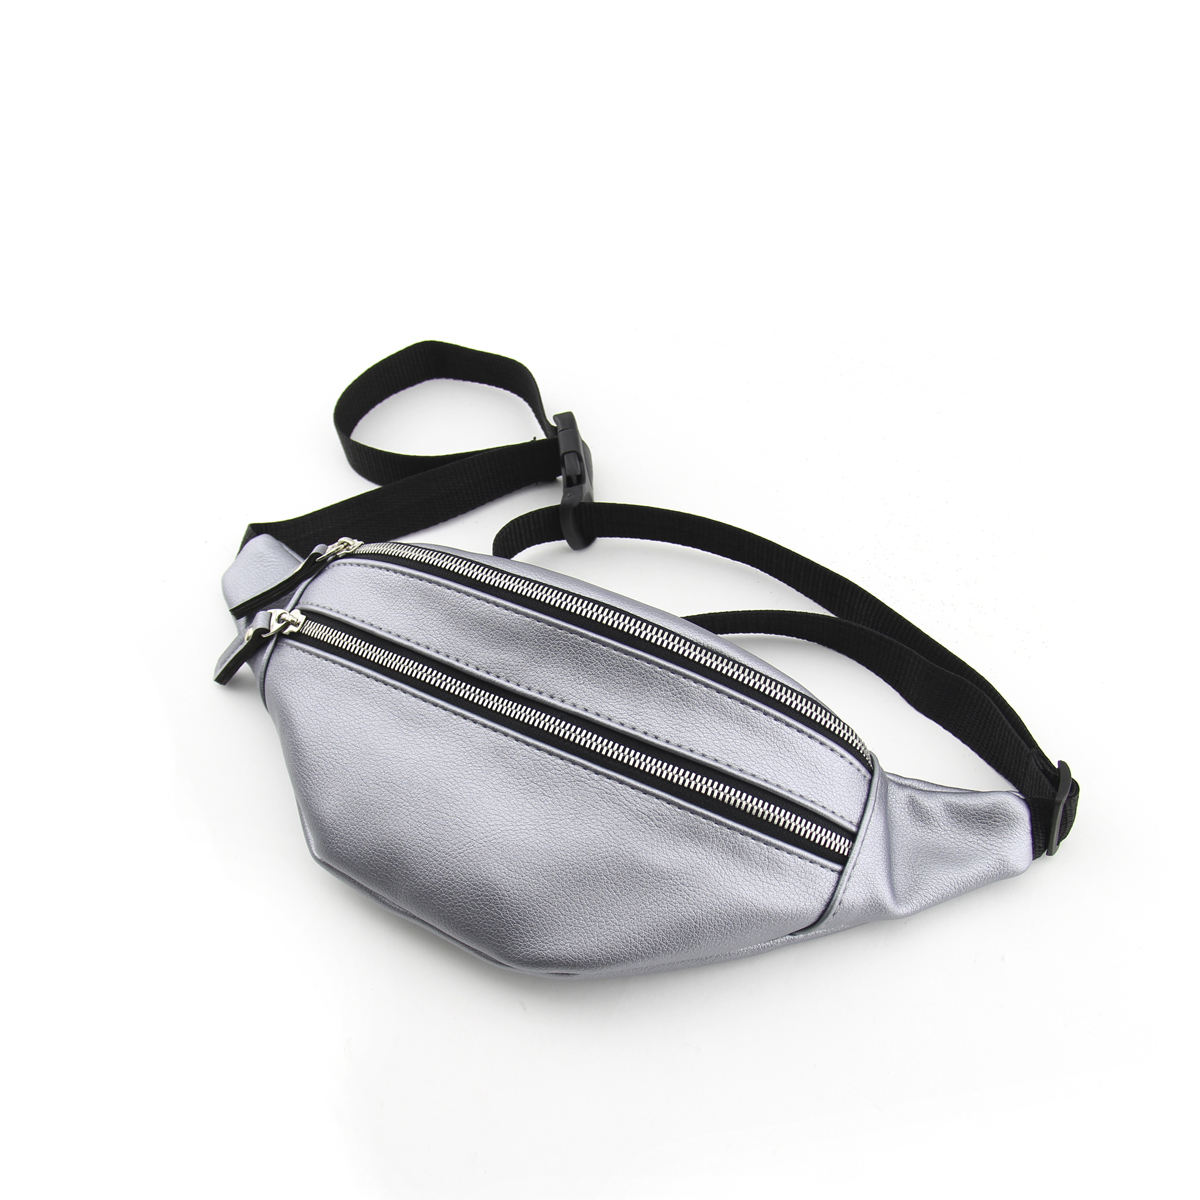 Waist belt bag with adjustable strap with one zipped compartment and zip pocket on the front wall